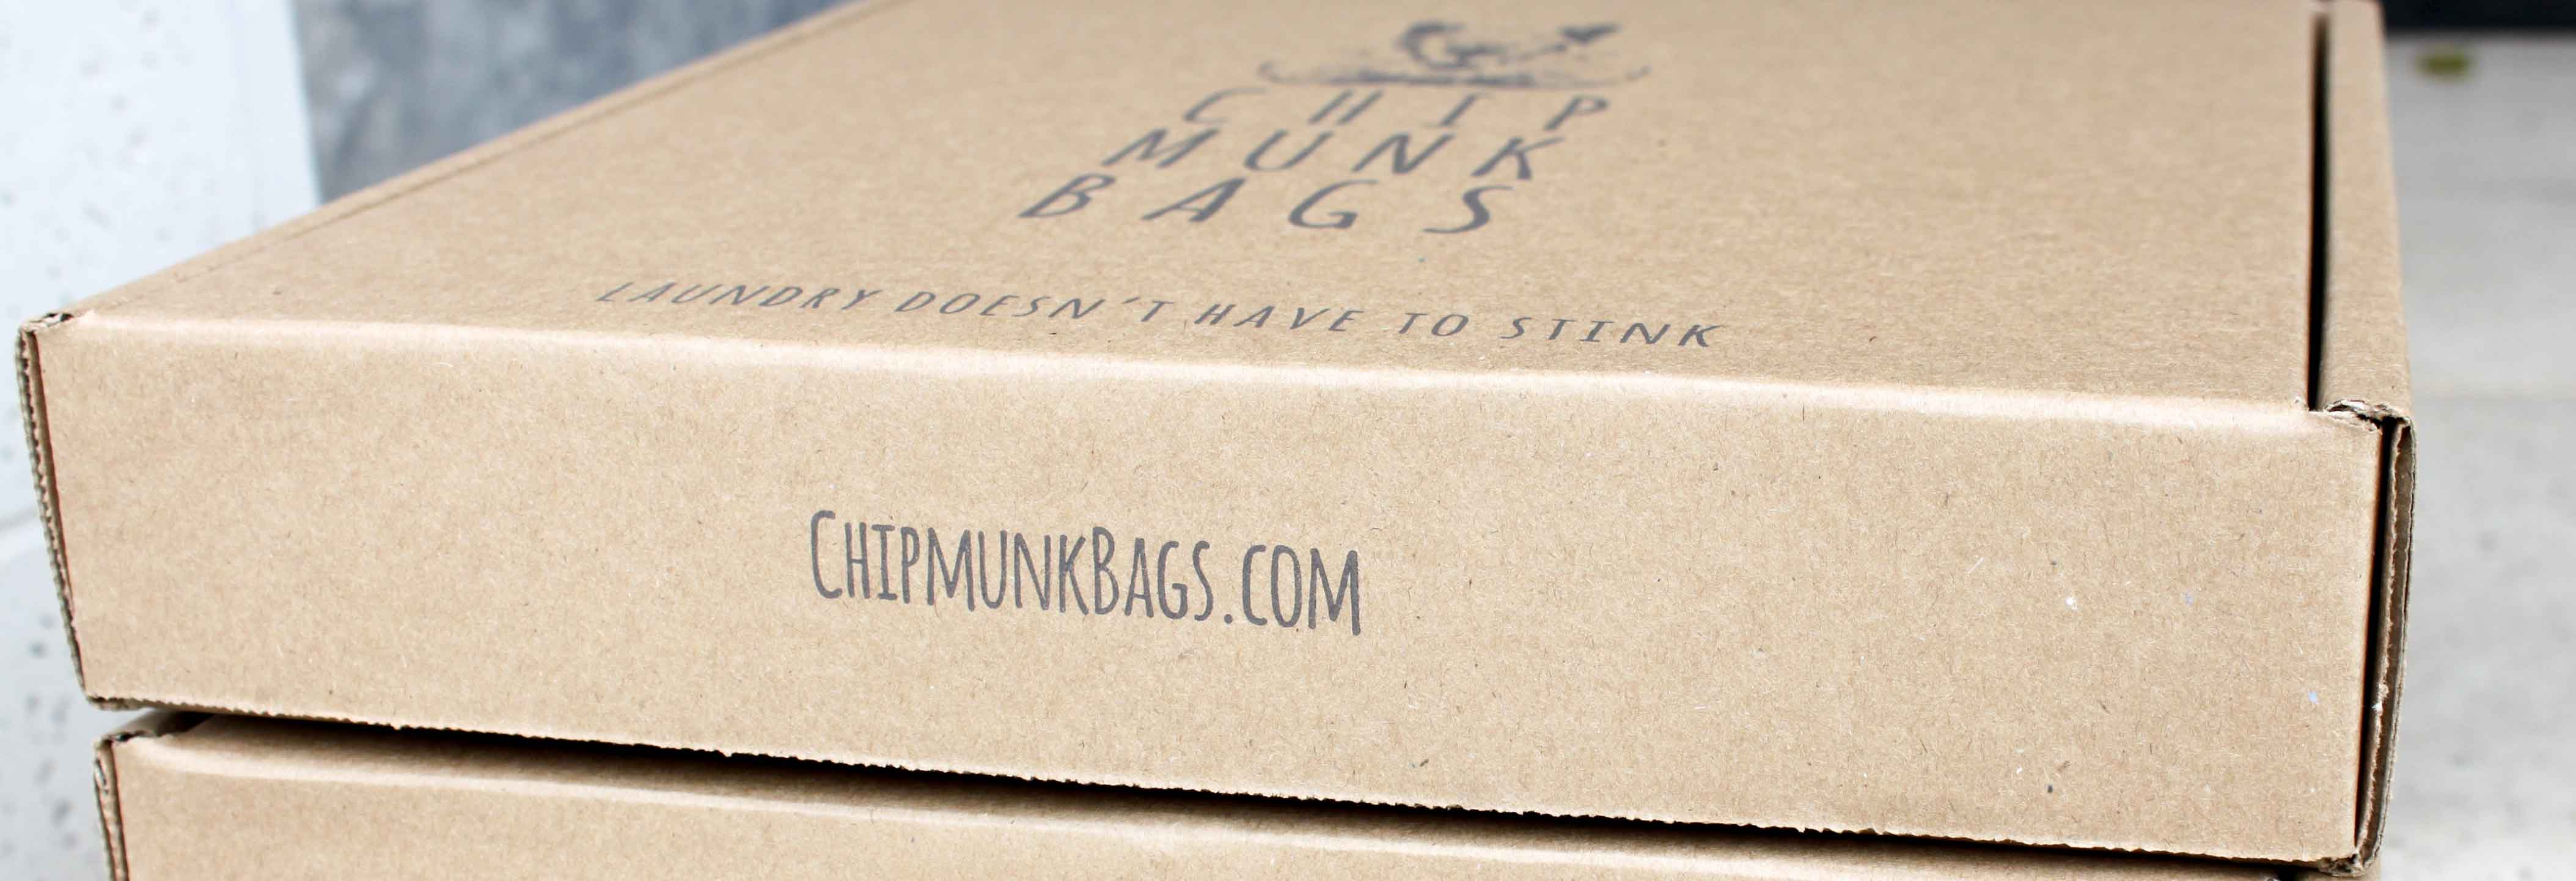 ChipmunkBags Laundry Bags - FAQs